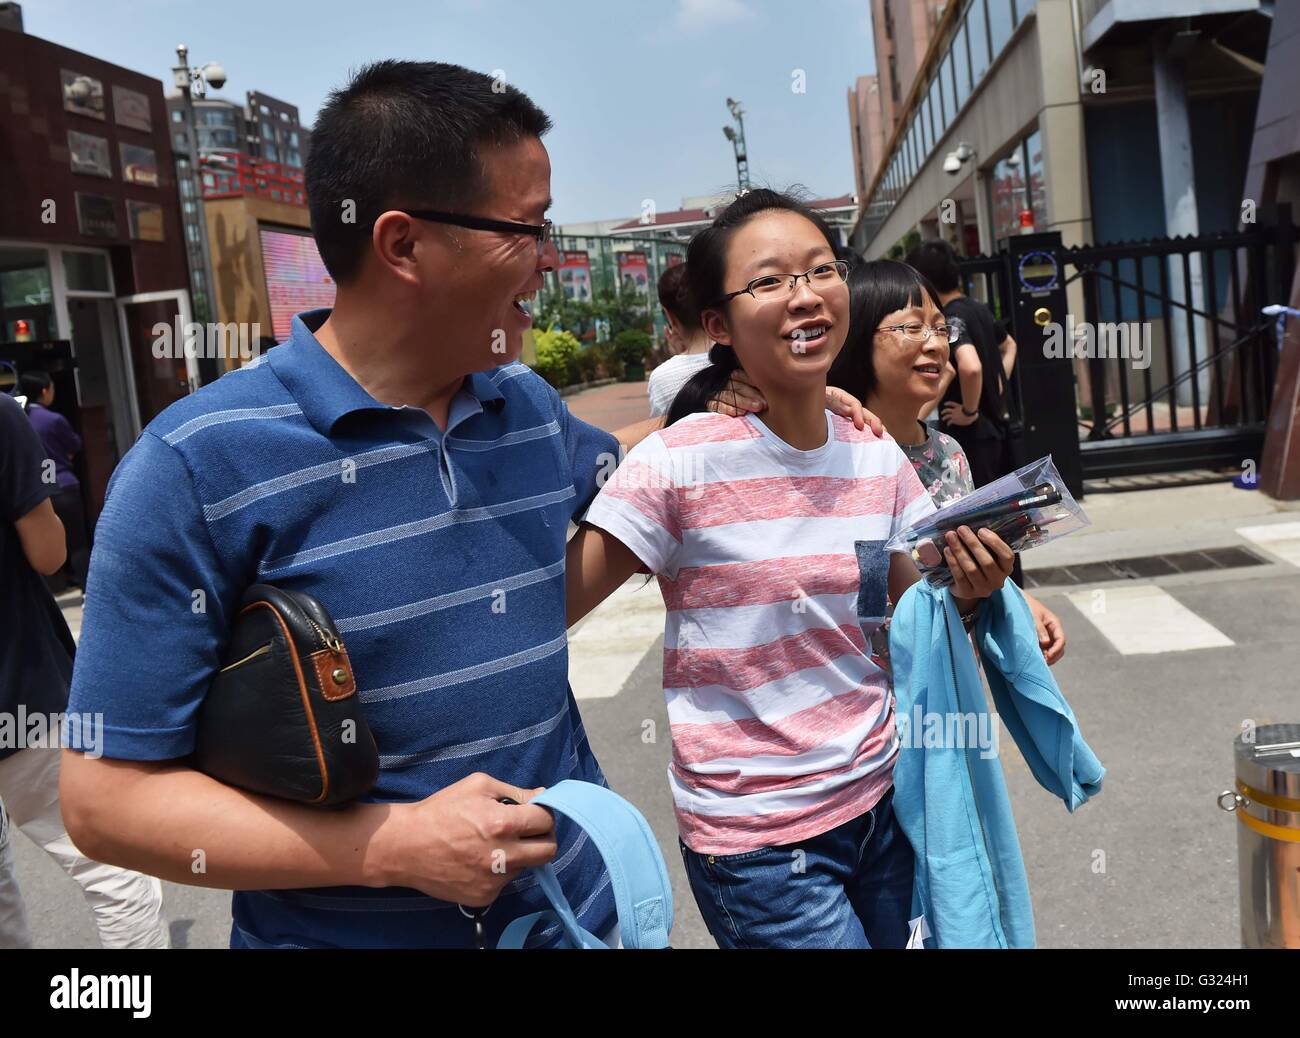 Beijing, China. 7th June, 2016. A candidate, accompanied by her parents, leaves an exam site after finishing the - Stock Image